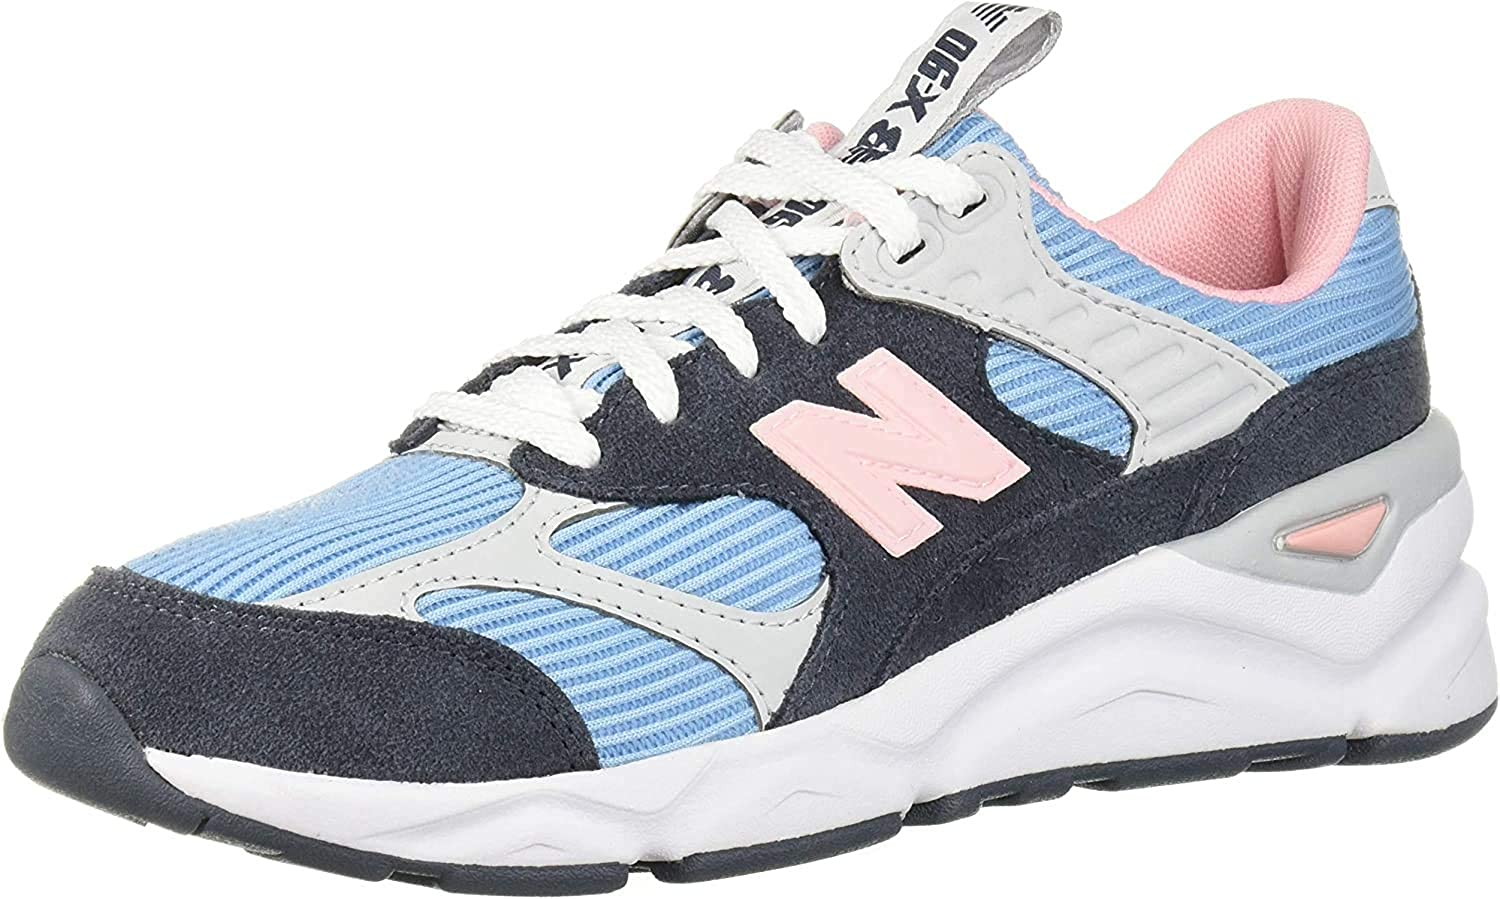 new balance 90x Online Shopping mall | Find the best prices and ...